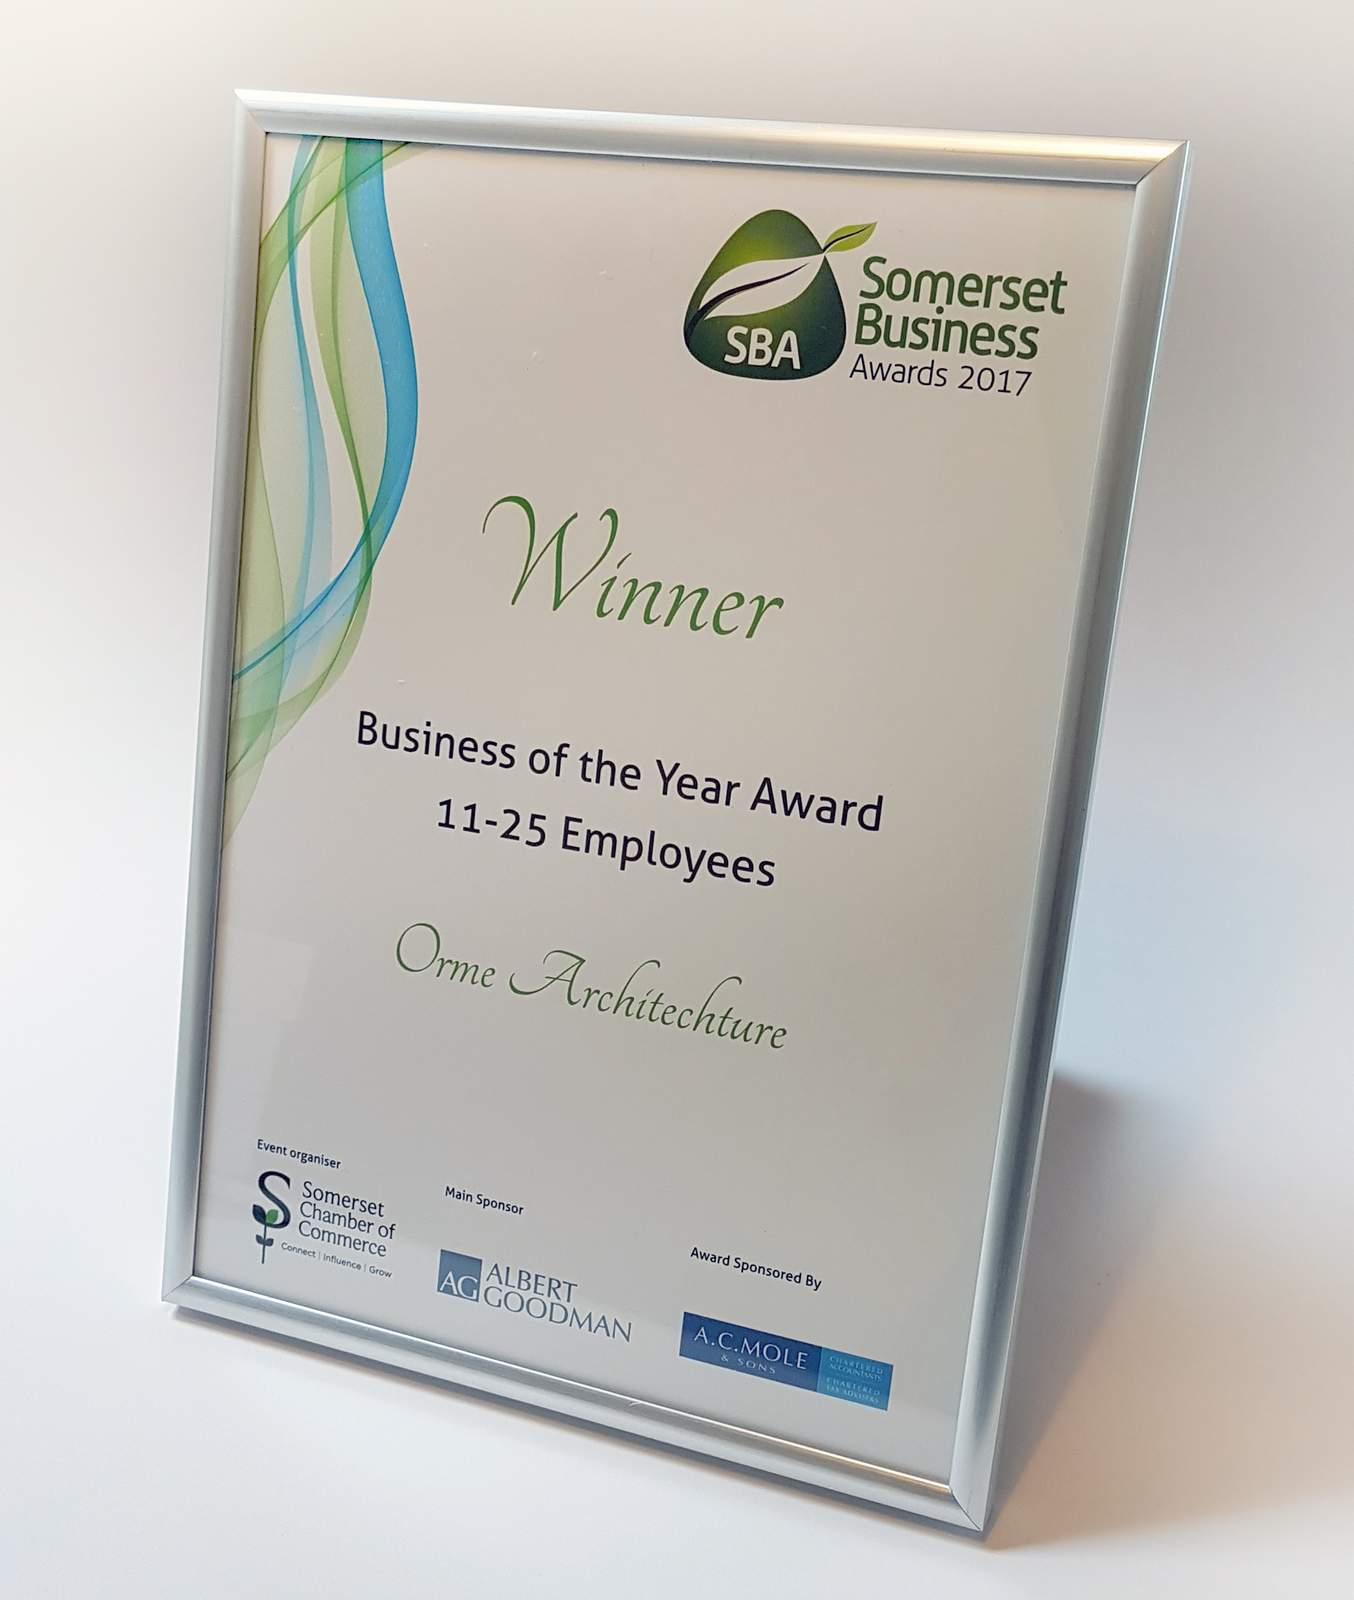 Winner - Somerset Business of the Year Award 2017 - Winner of the Somerset Business of the Year Award 2017 in the 11-25 employees category